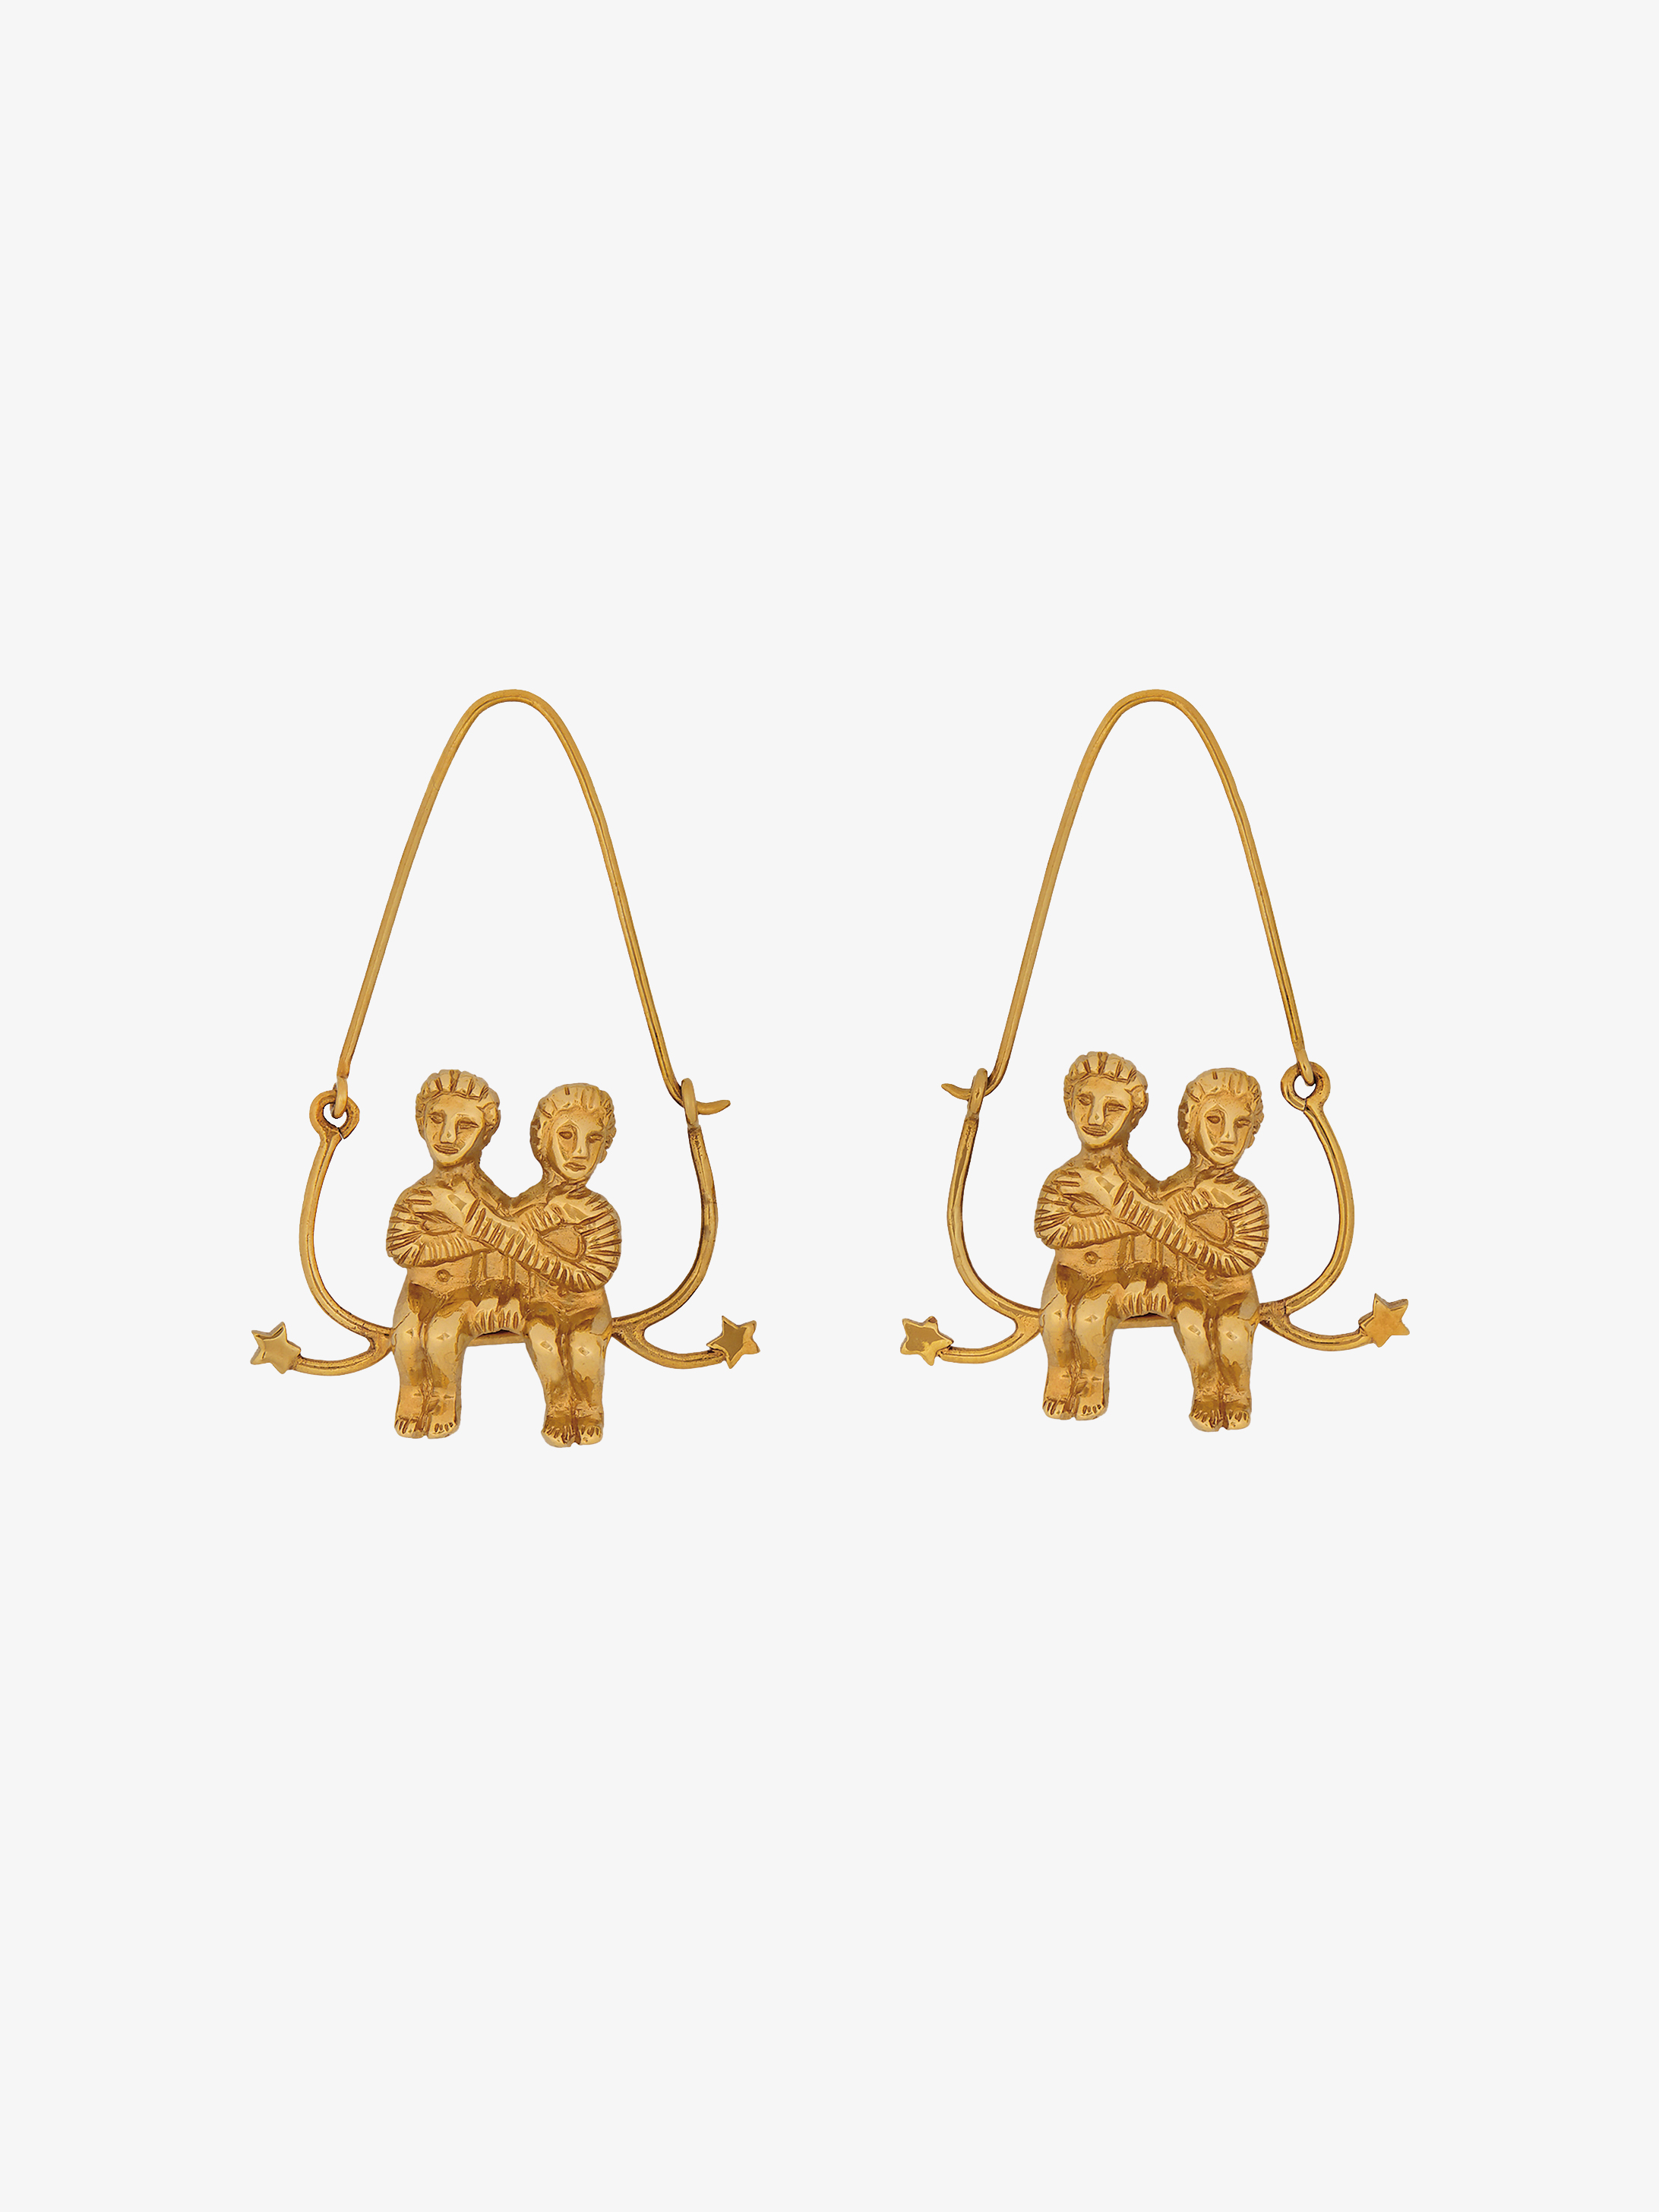 Gemini zodiac earrings